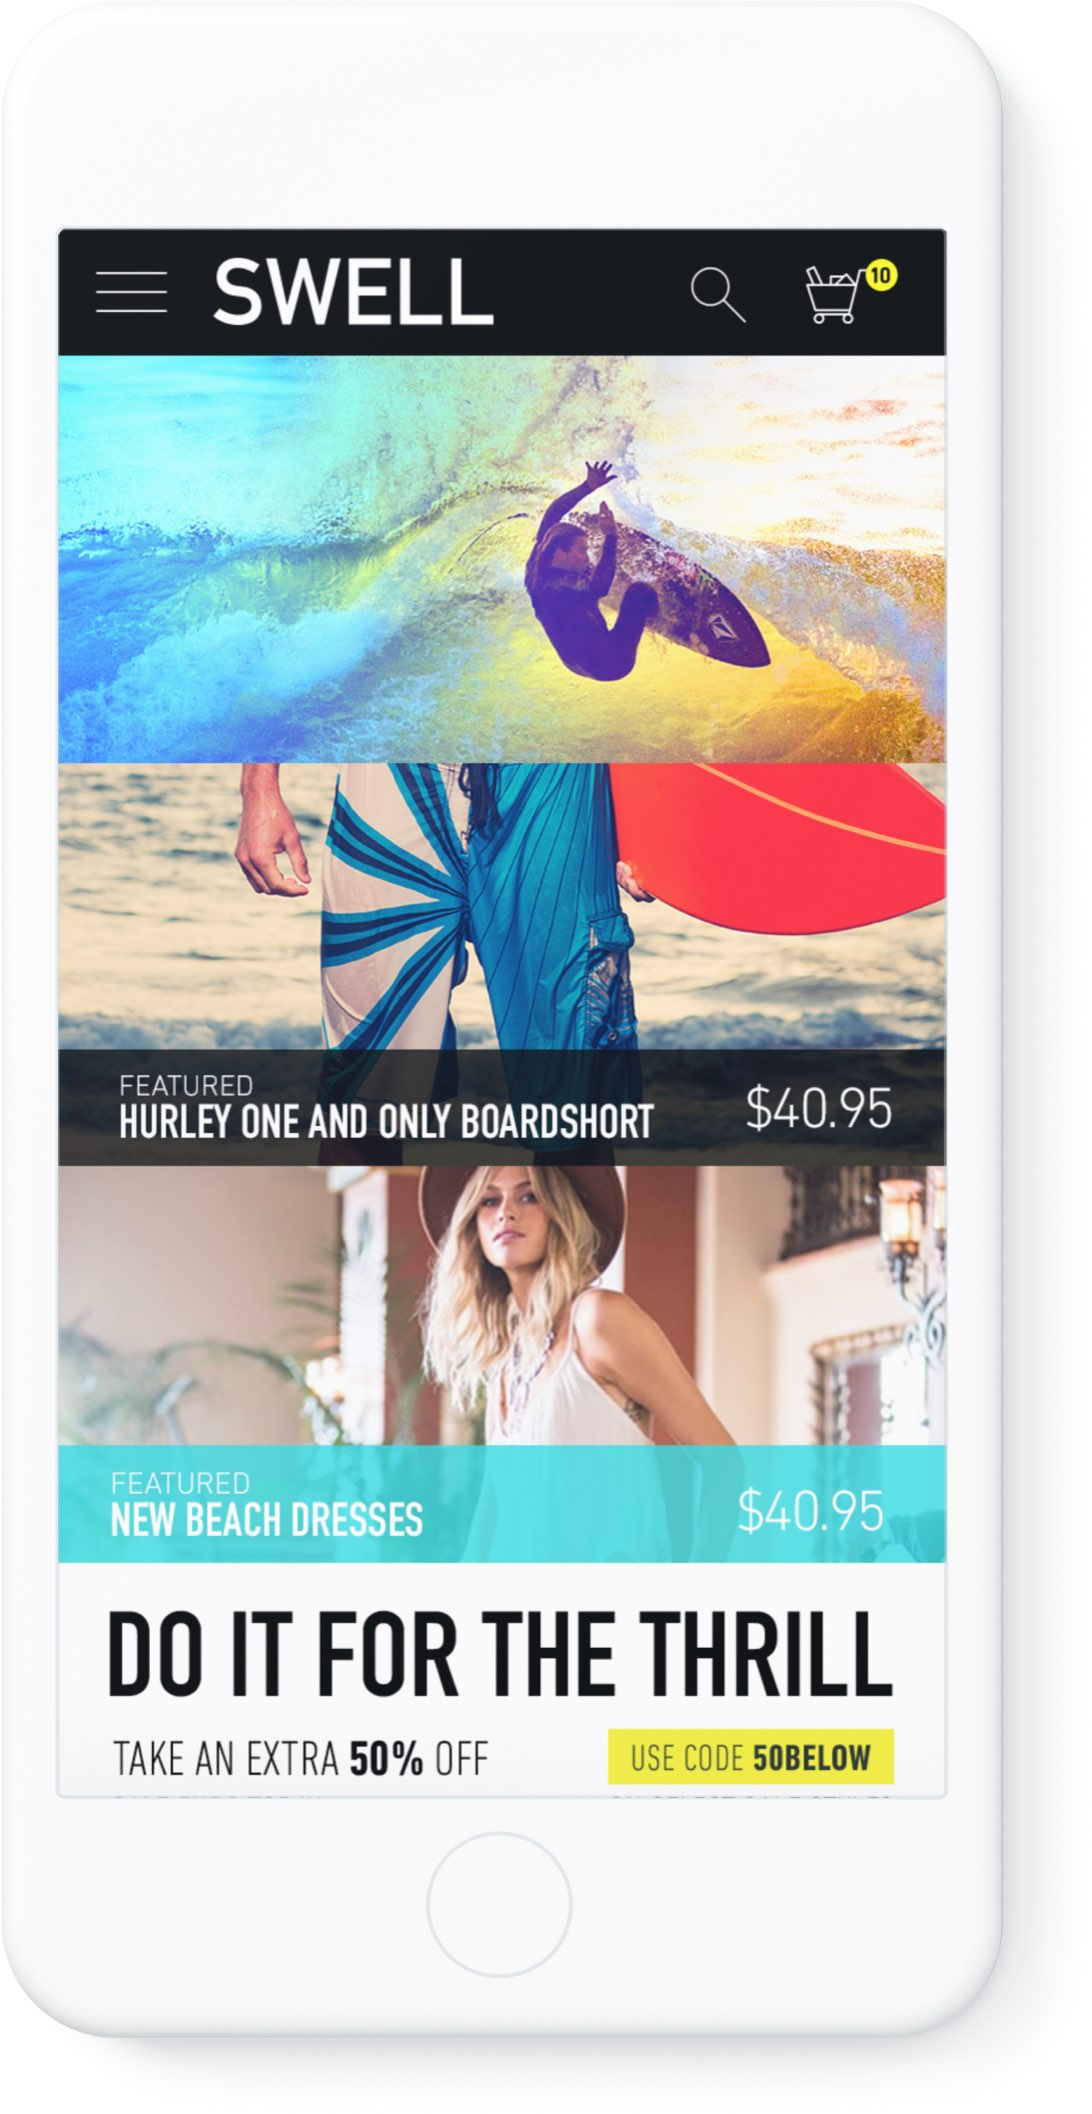 SWELL website design in mobile device